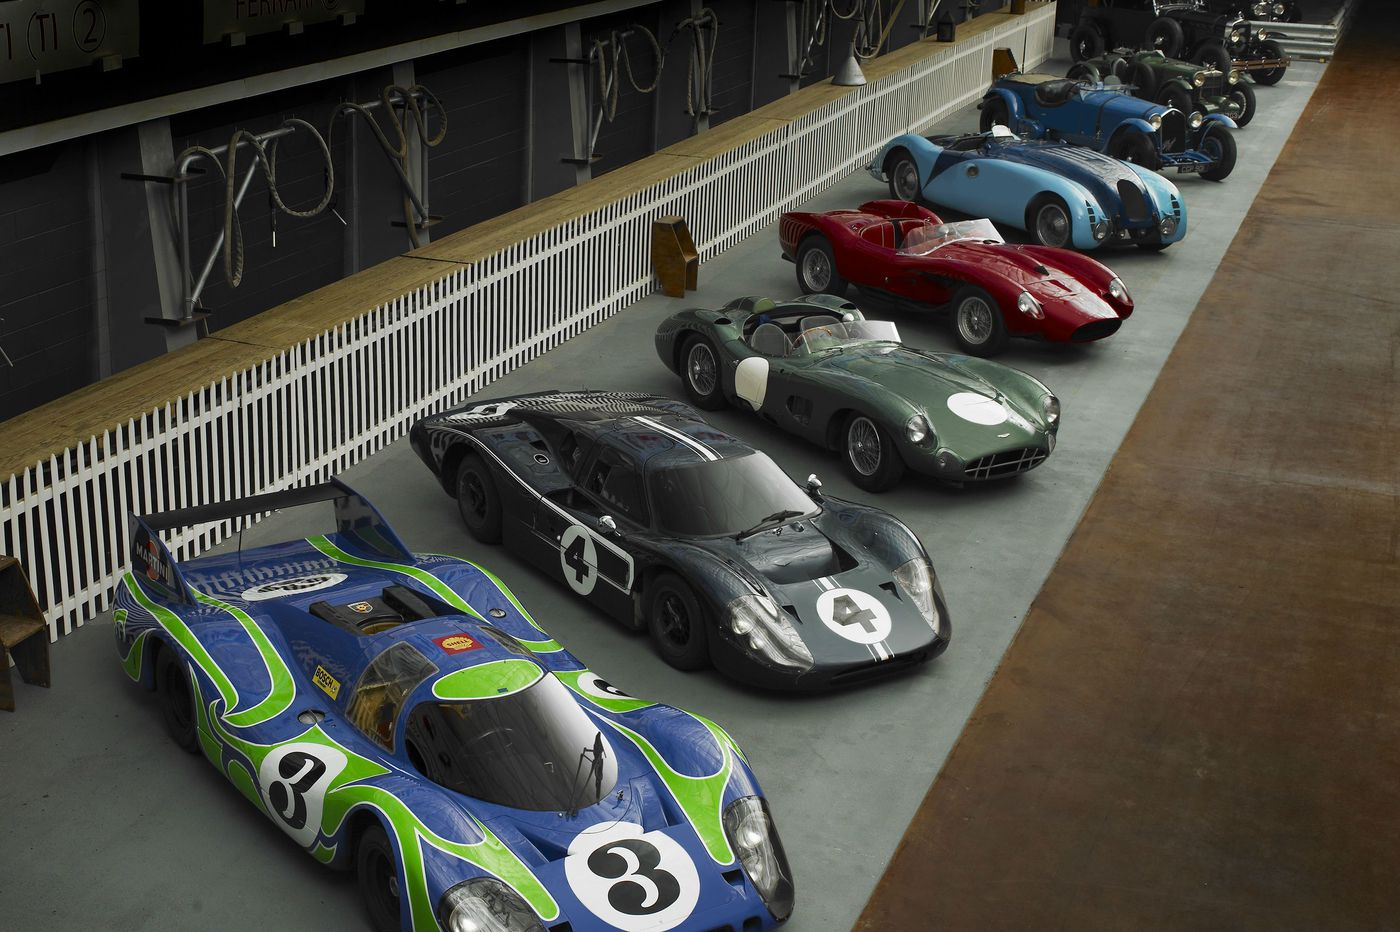 The RoundUp: Pool named after longtime employee, classic car museum's collection ranked No. 1